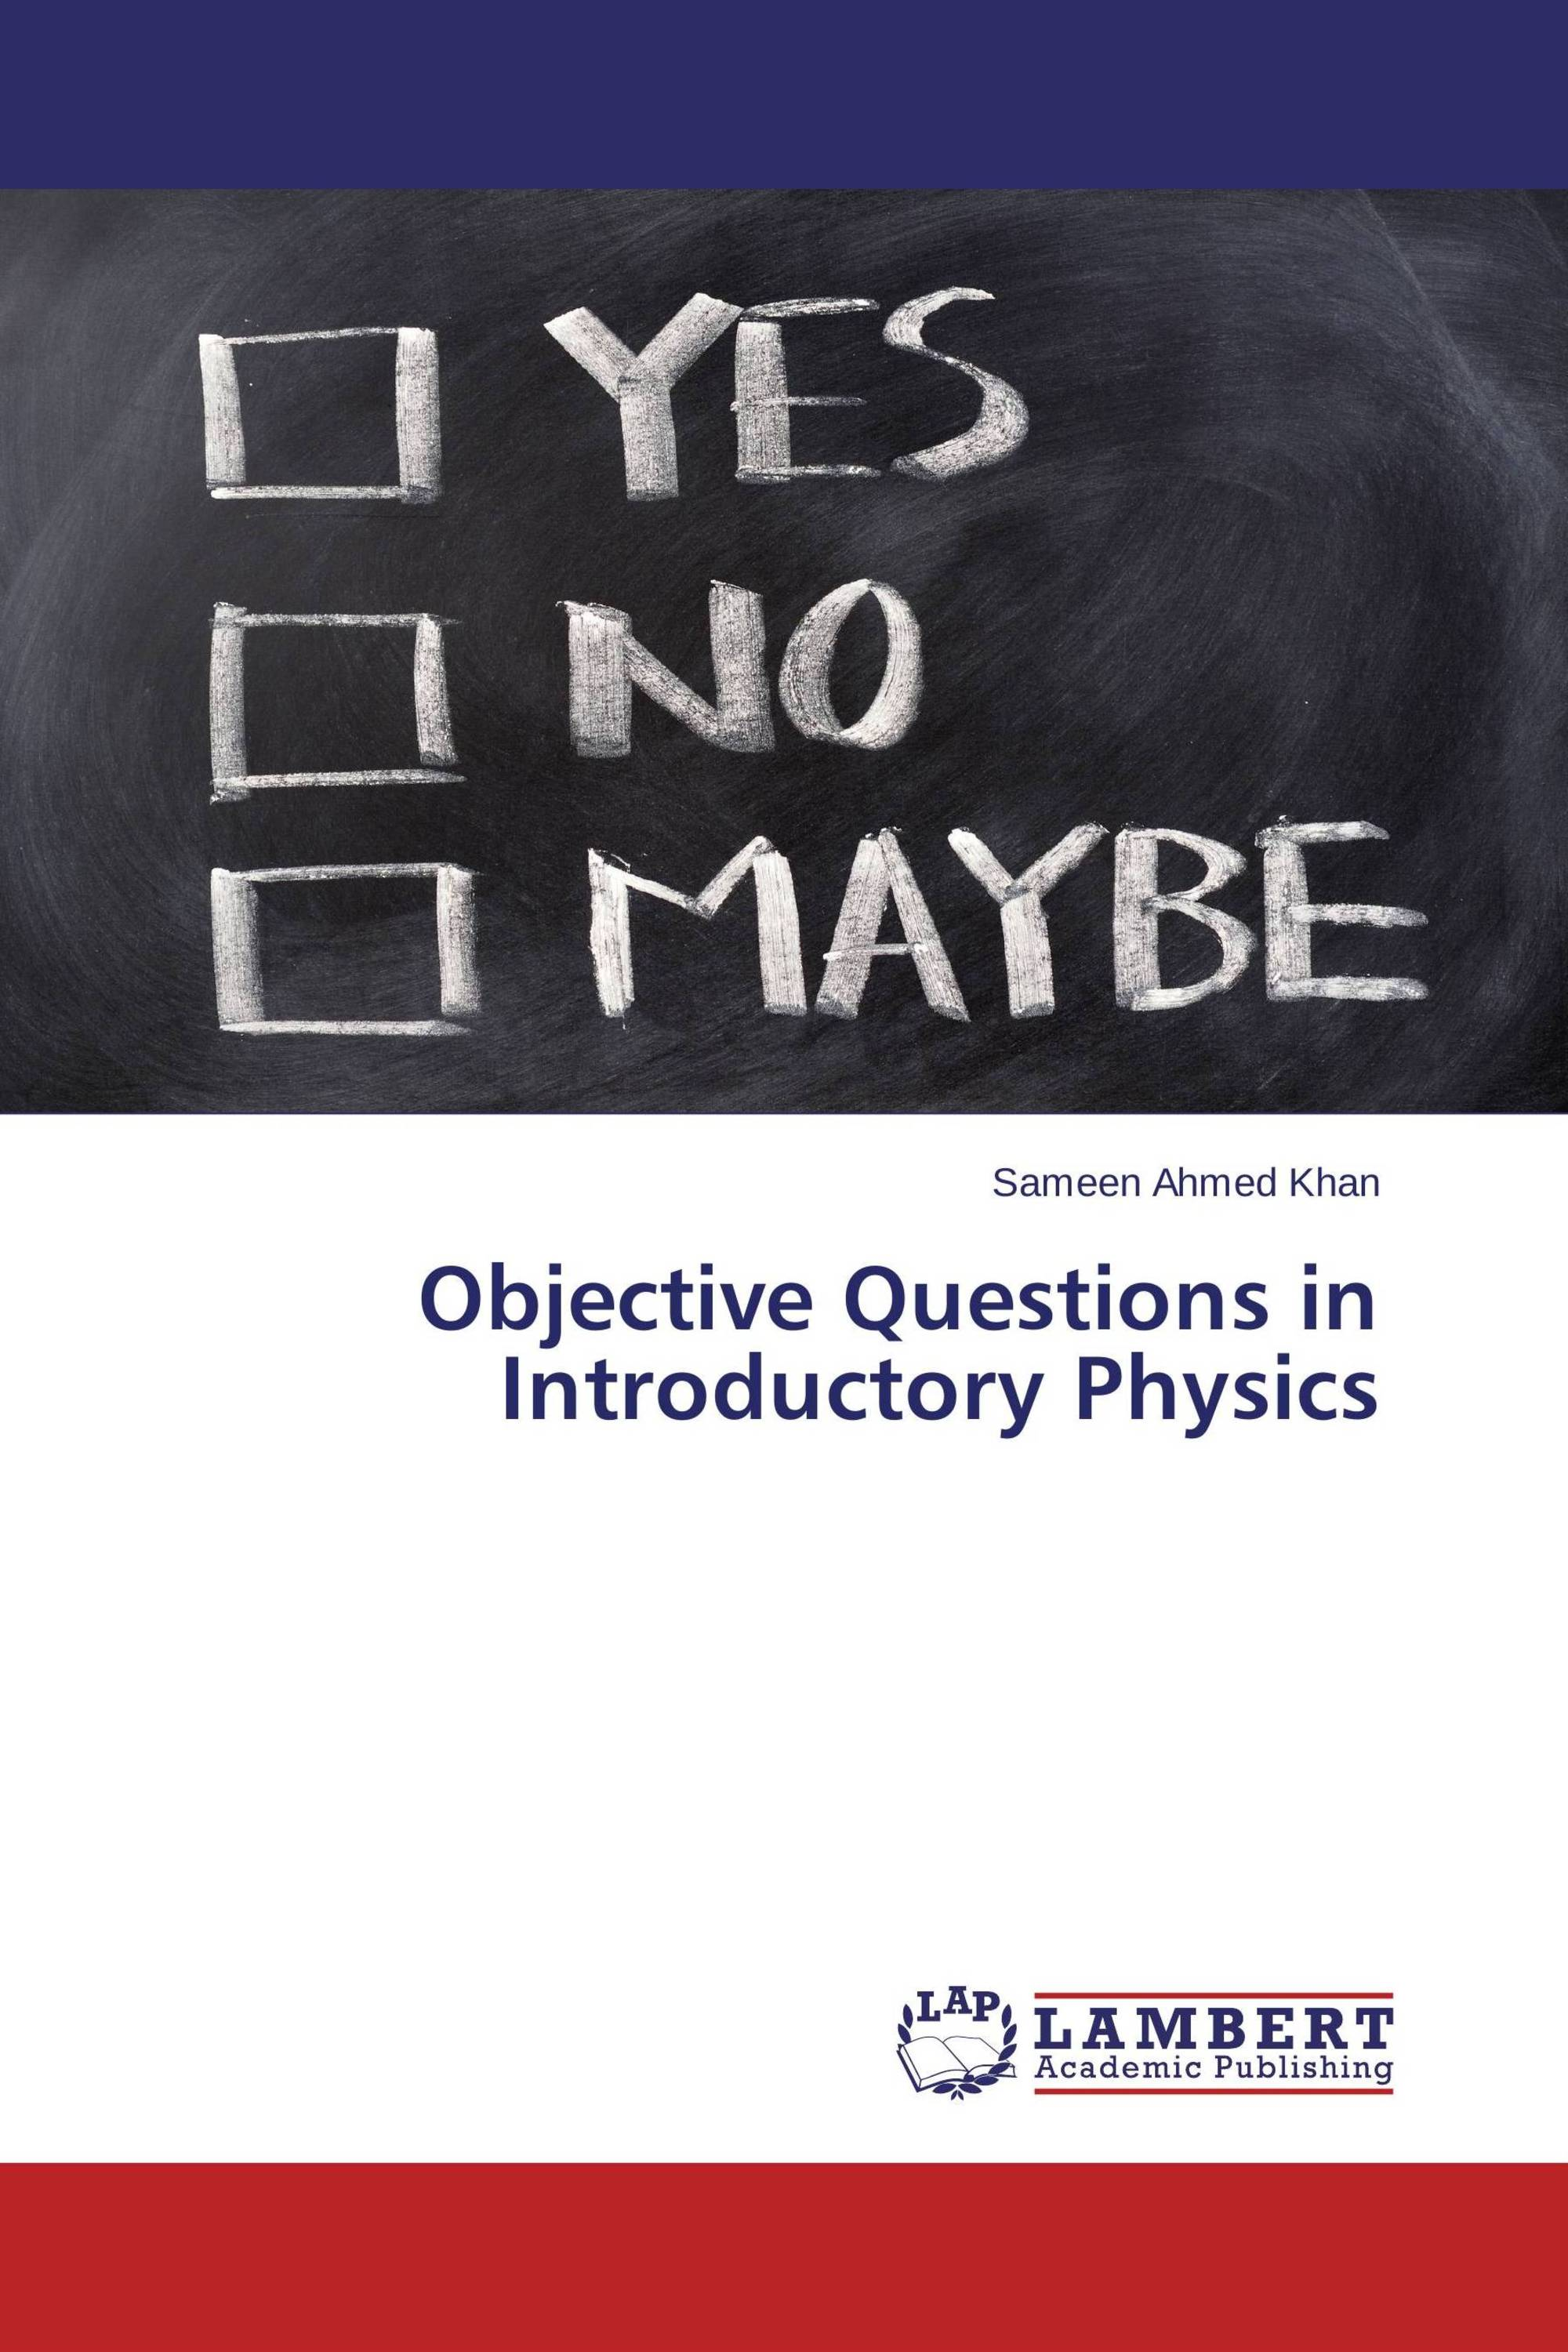 Objective Questions in Introductory Physics